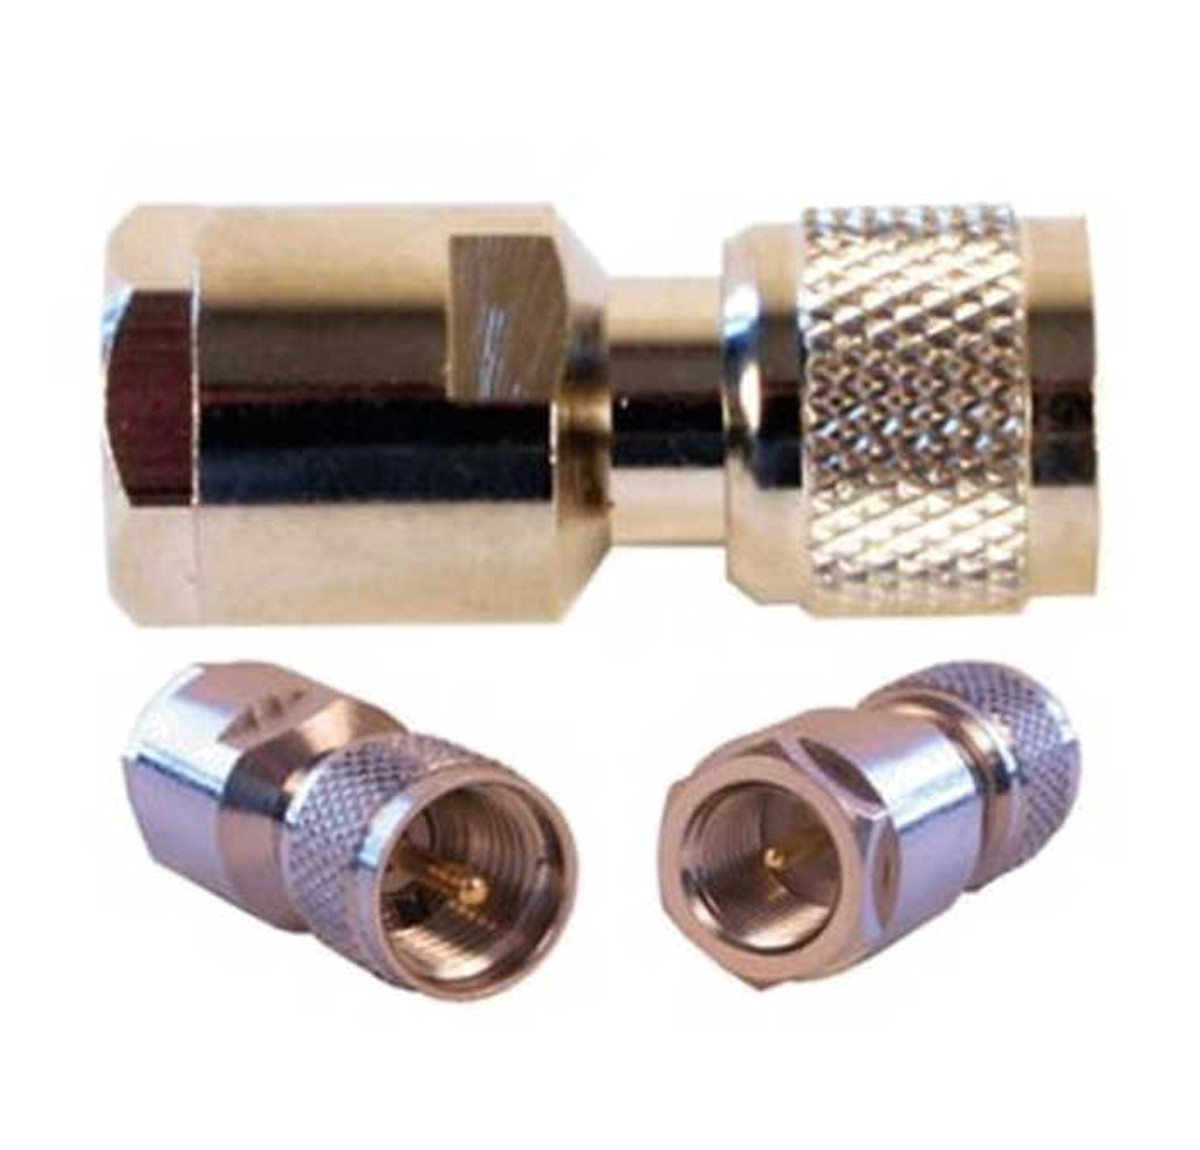 Wilson 971105 FME Female to Mini UHF Male Connector, detail